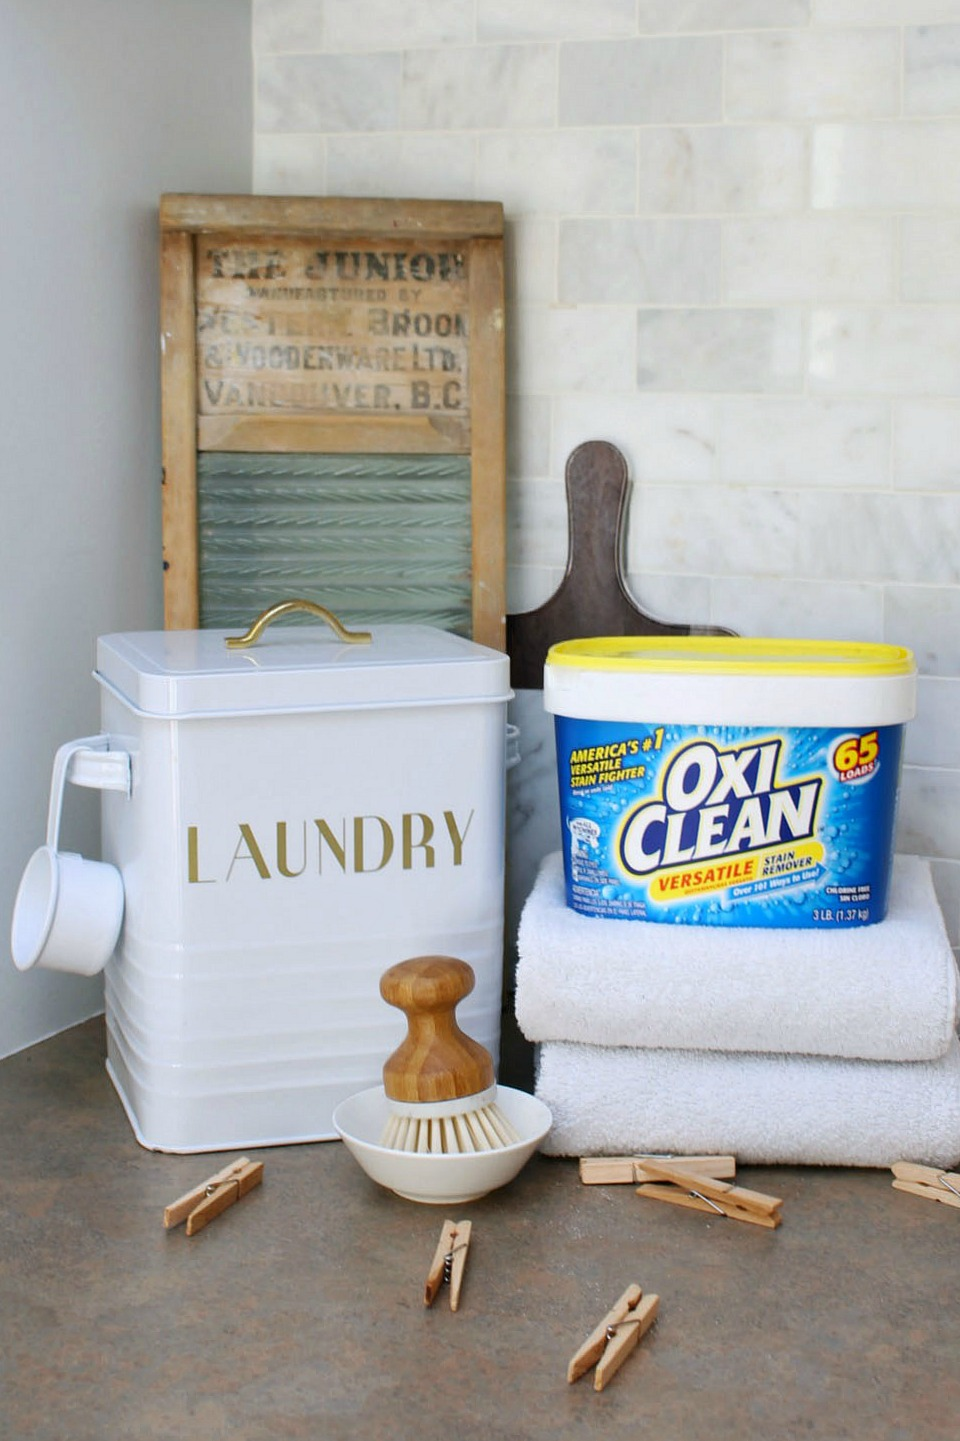 7 things that you can clean with OxiClean. I love it when one cleaner can be used for so many different cleaning tasks. #ad